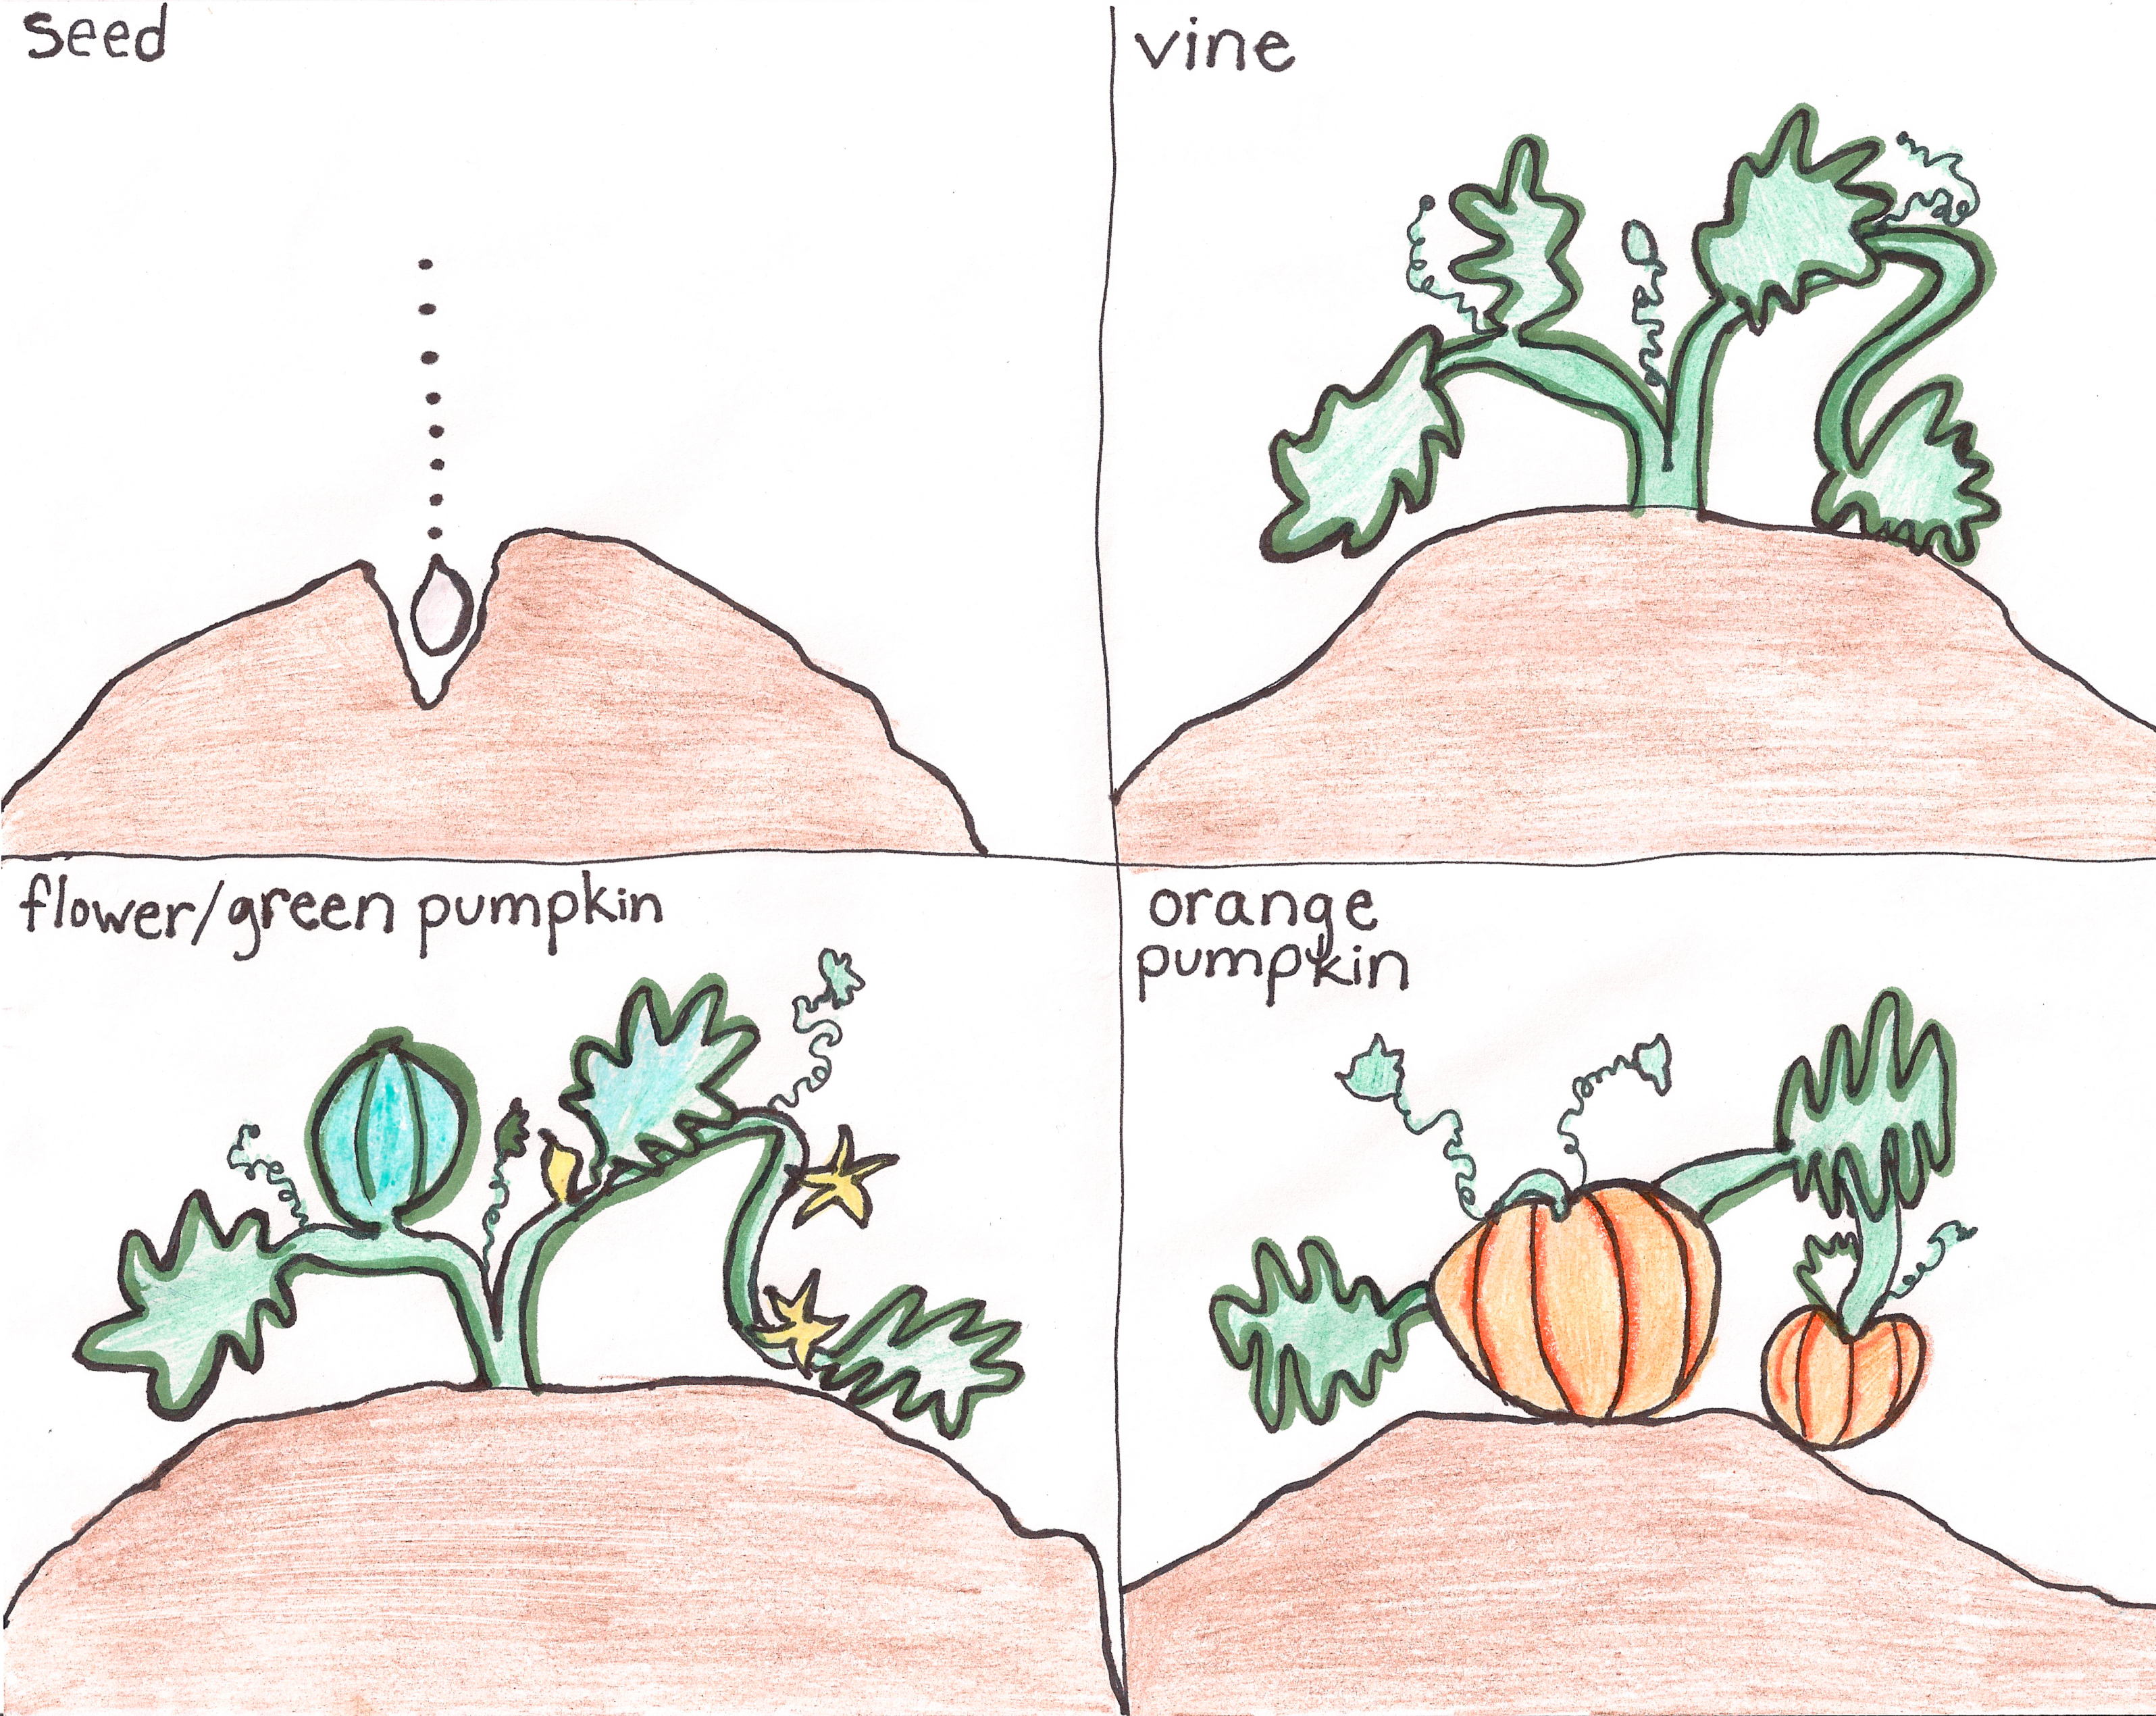 Pumpkin Patch Comparison And The Life Cycle Of A Pumpkin